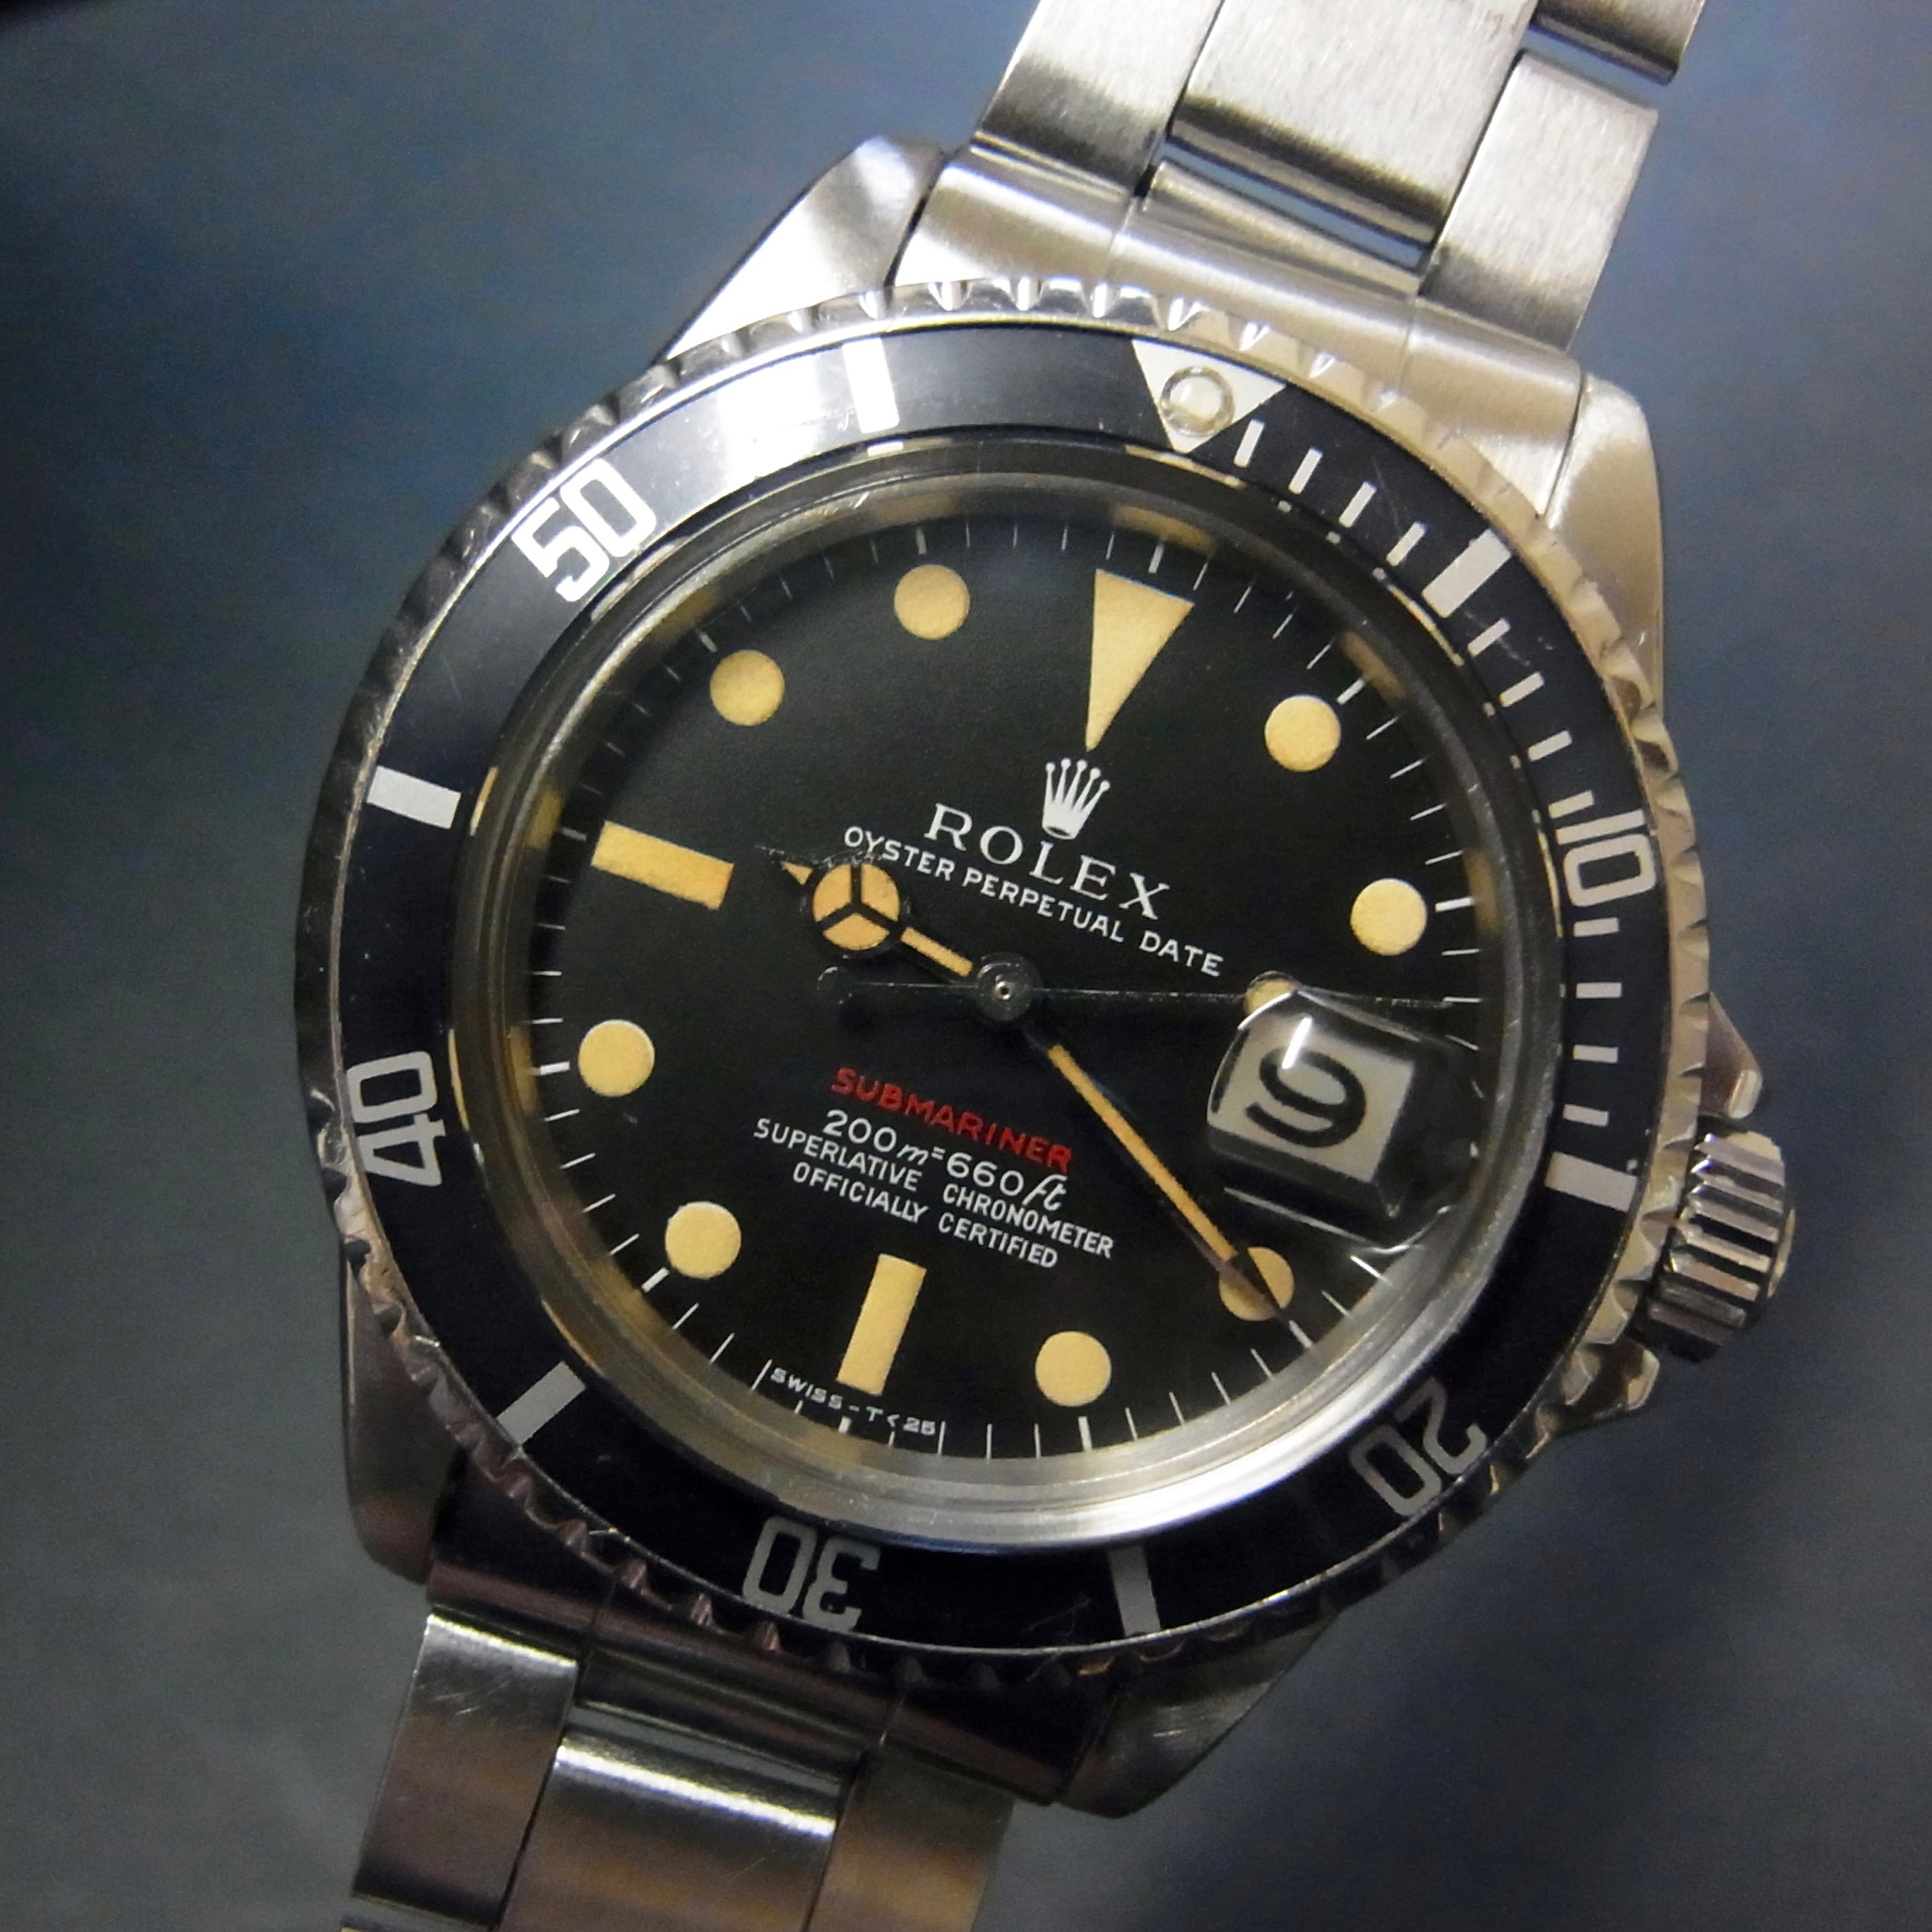 Rolex 1680 MK1 Red Submariner Excellent Patina #status ; Sold#